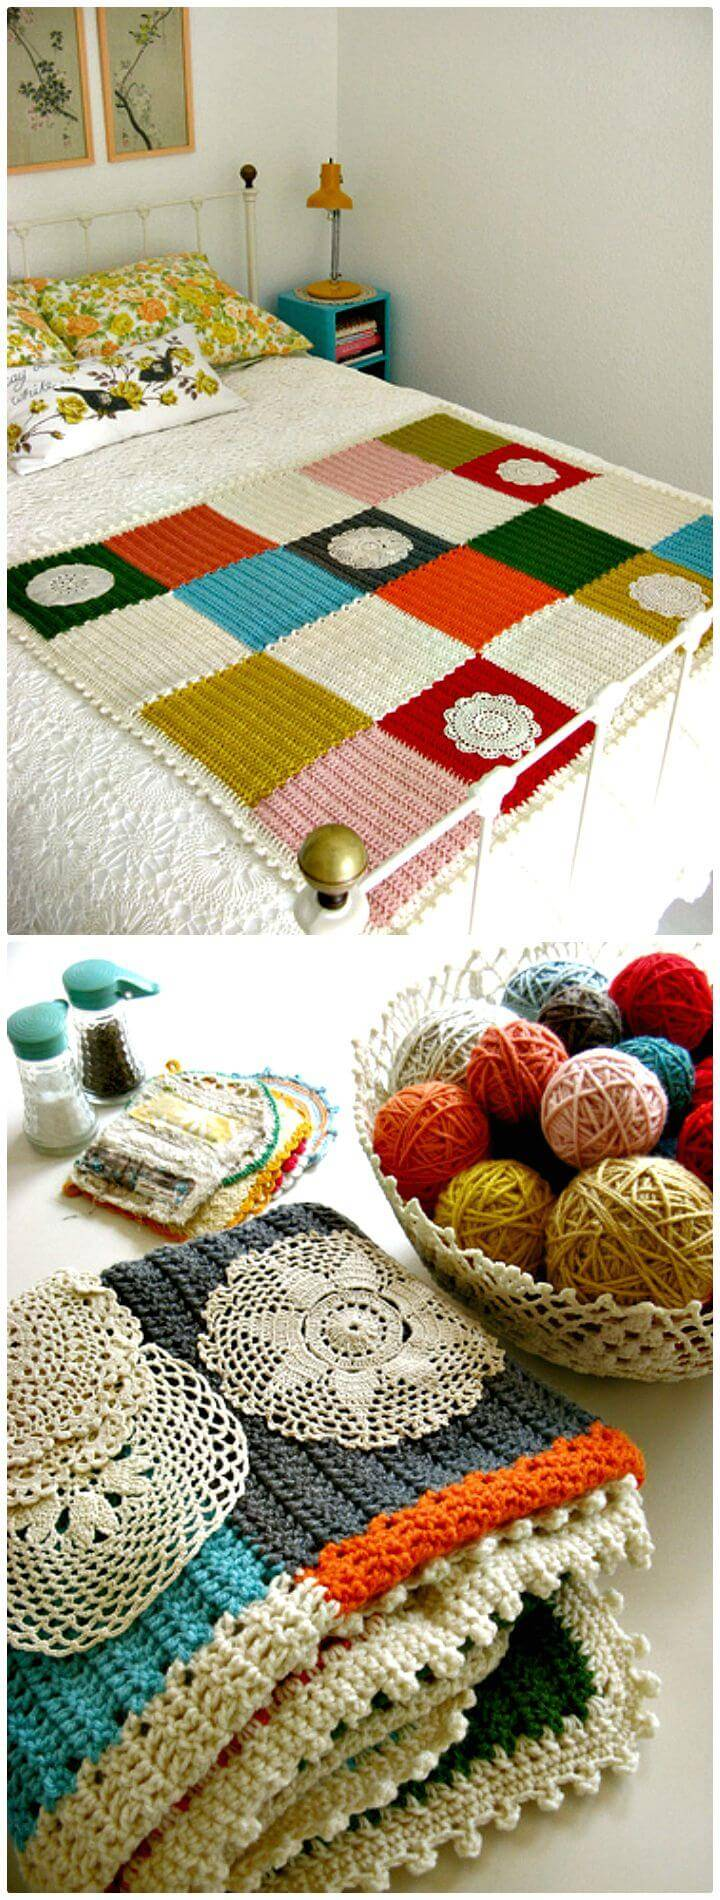 Free Crochet Ordinarily Extraordinary Blanket Pattern